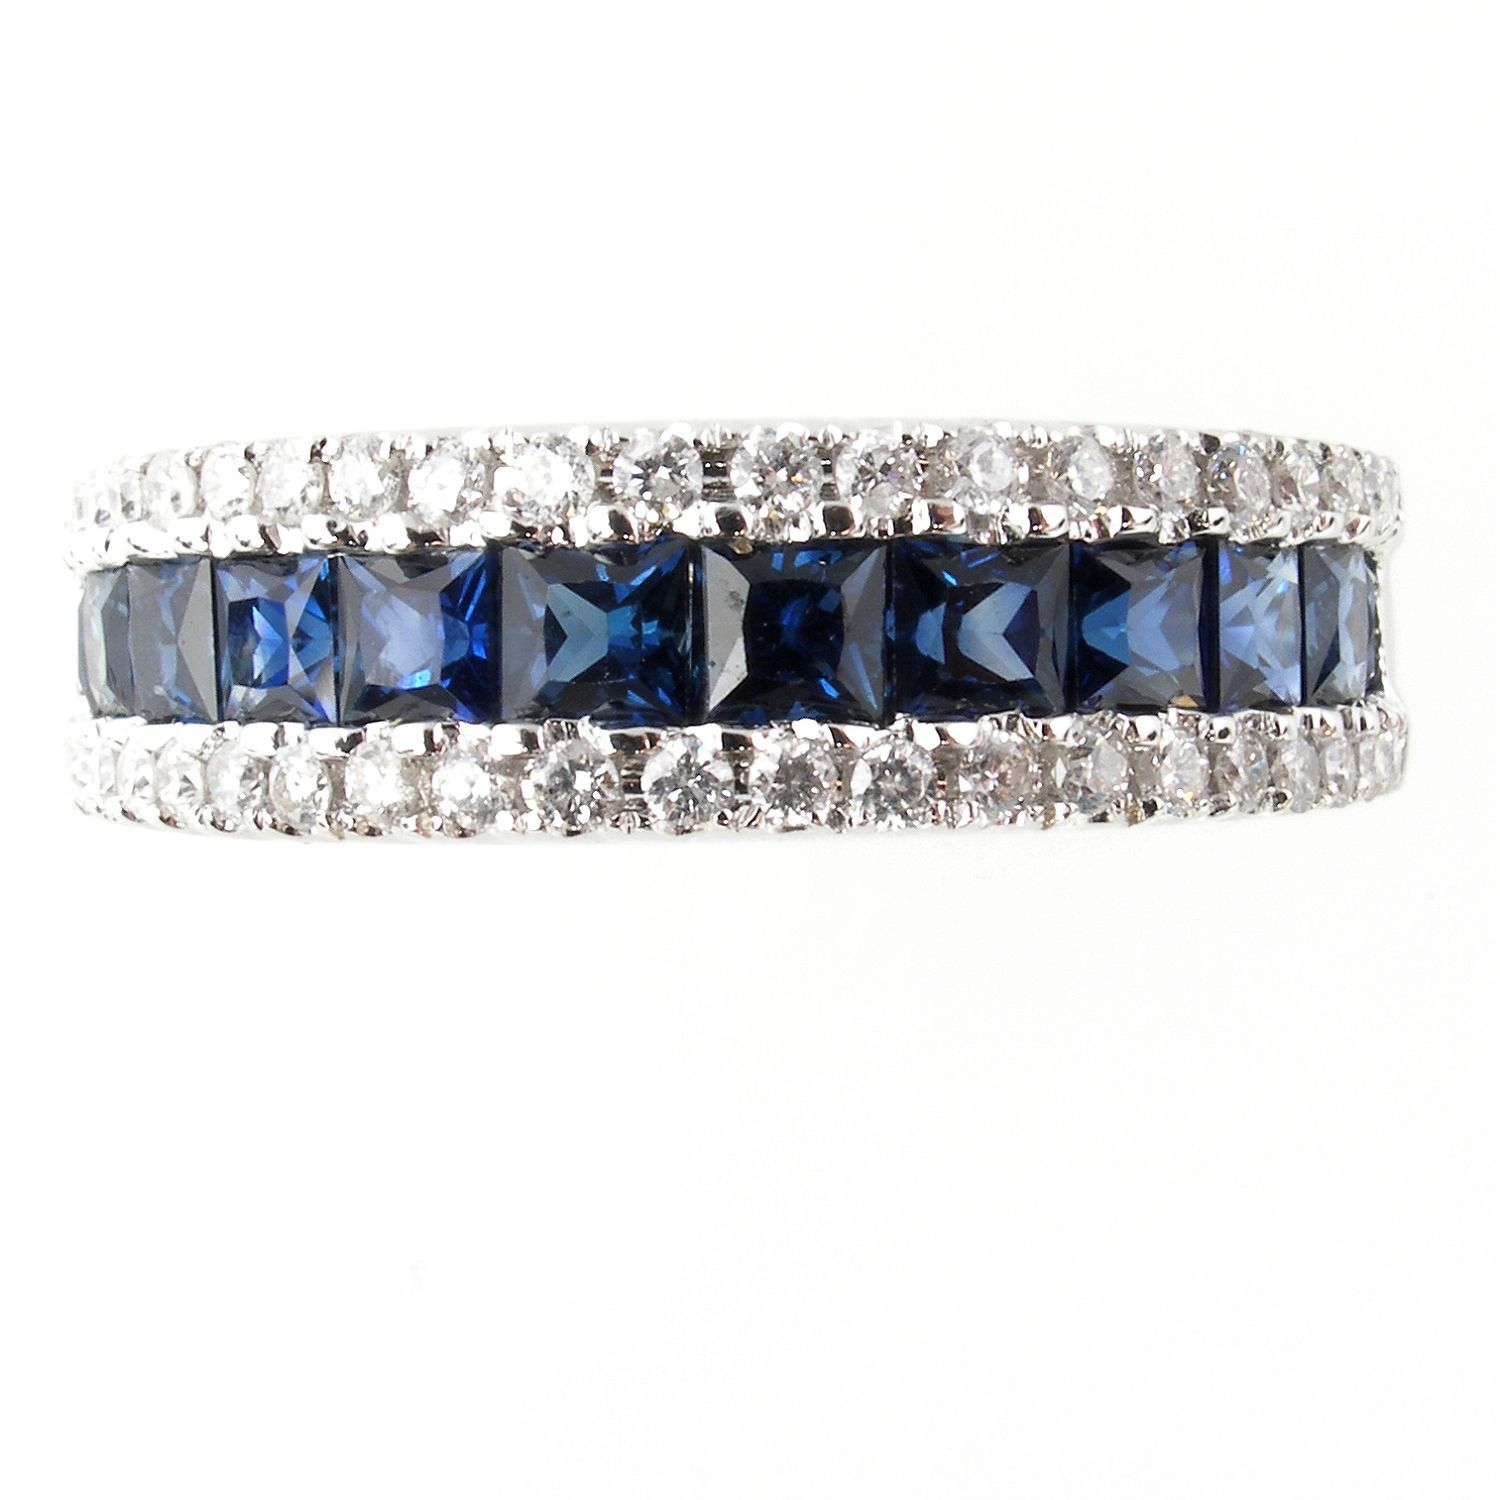 25 Ct Tw Diamond And 15 Ct Tw Sapphire Band  Sam's Club Sapphire  Bandgemstone Ringssam's Clubwedding Ringspolice Wifeengagement